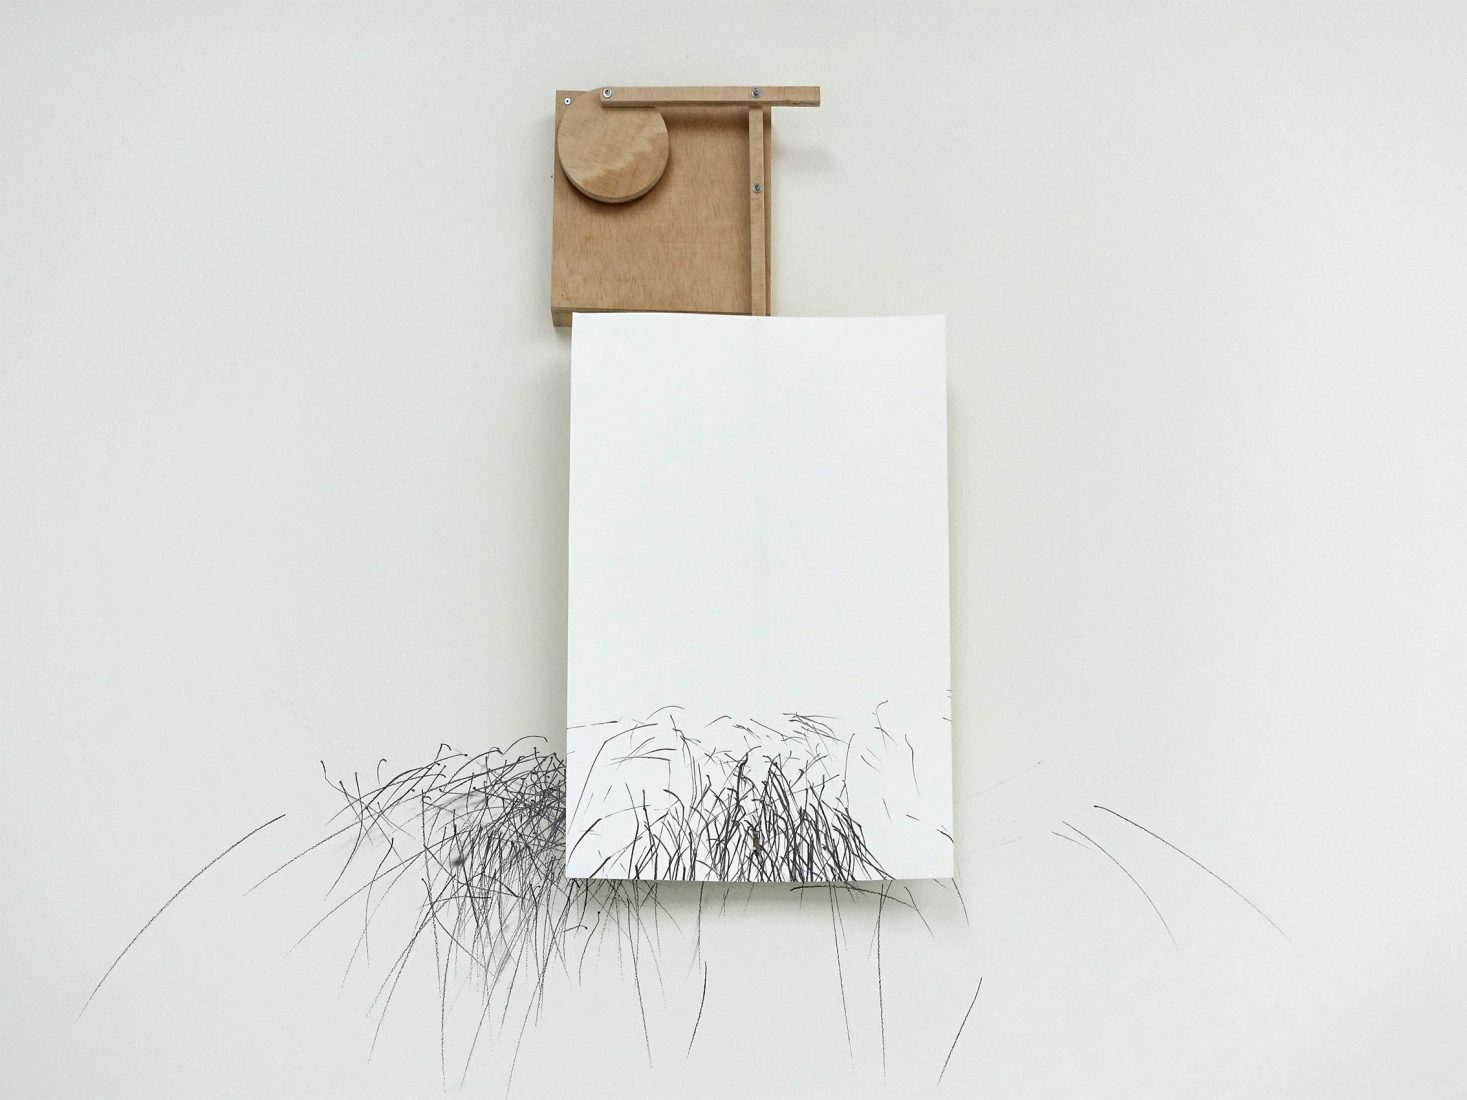 Boryana Petkova. 31:41:07, 2020, performative drawing, video, installation, dimensions variable